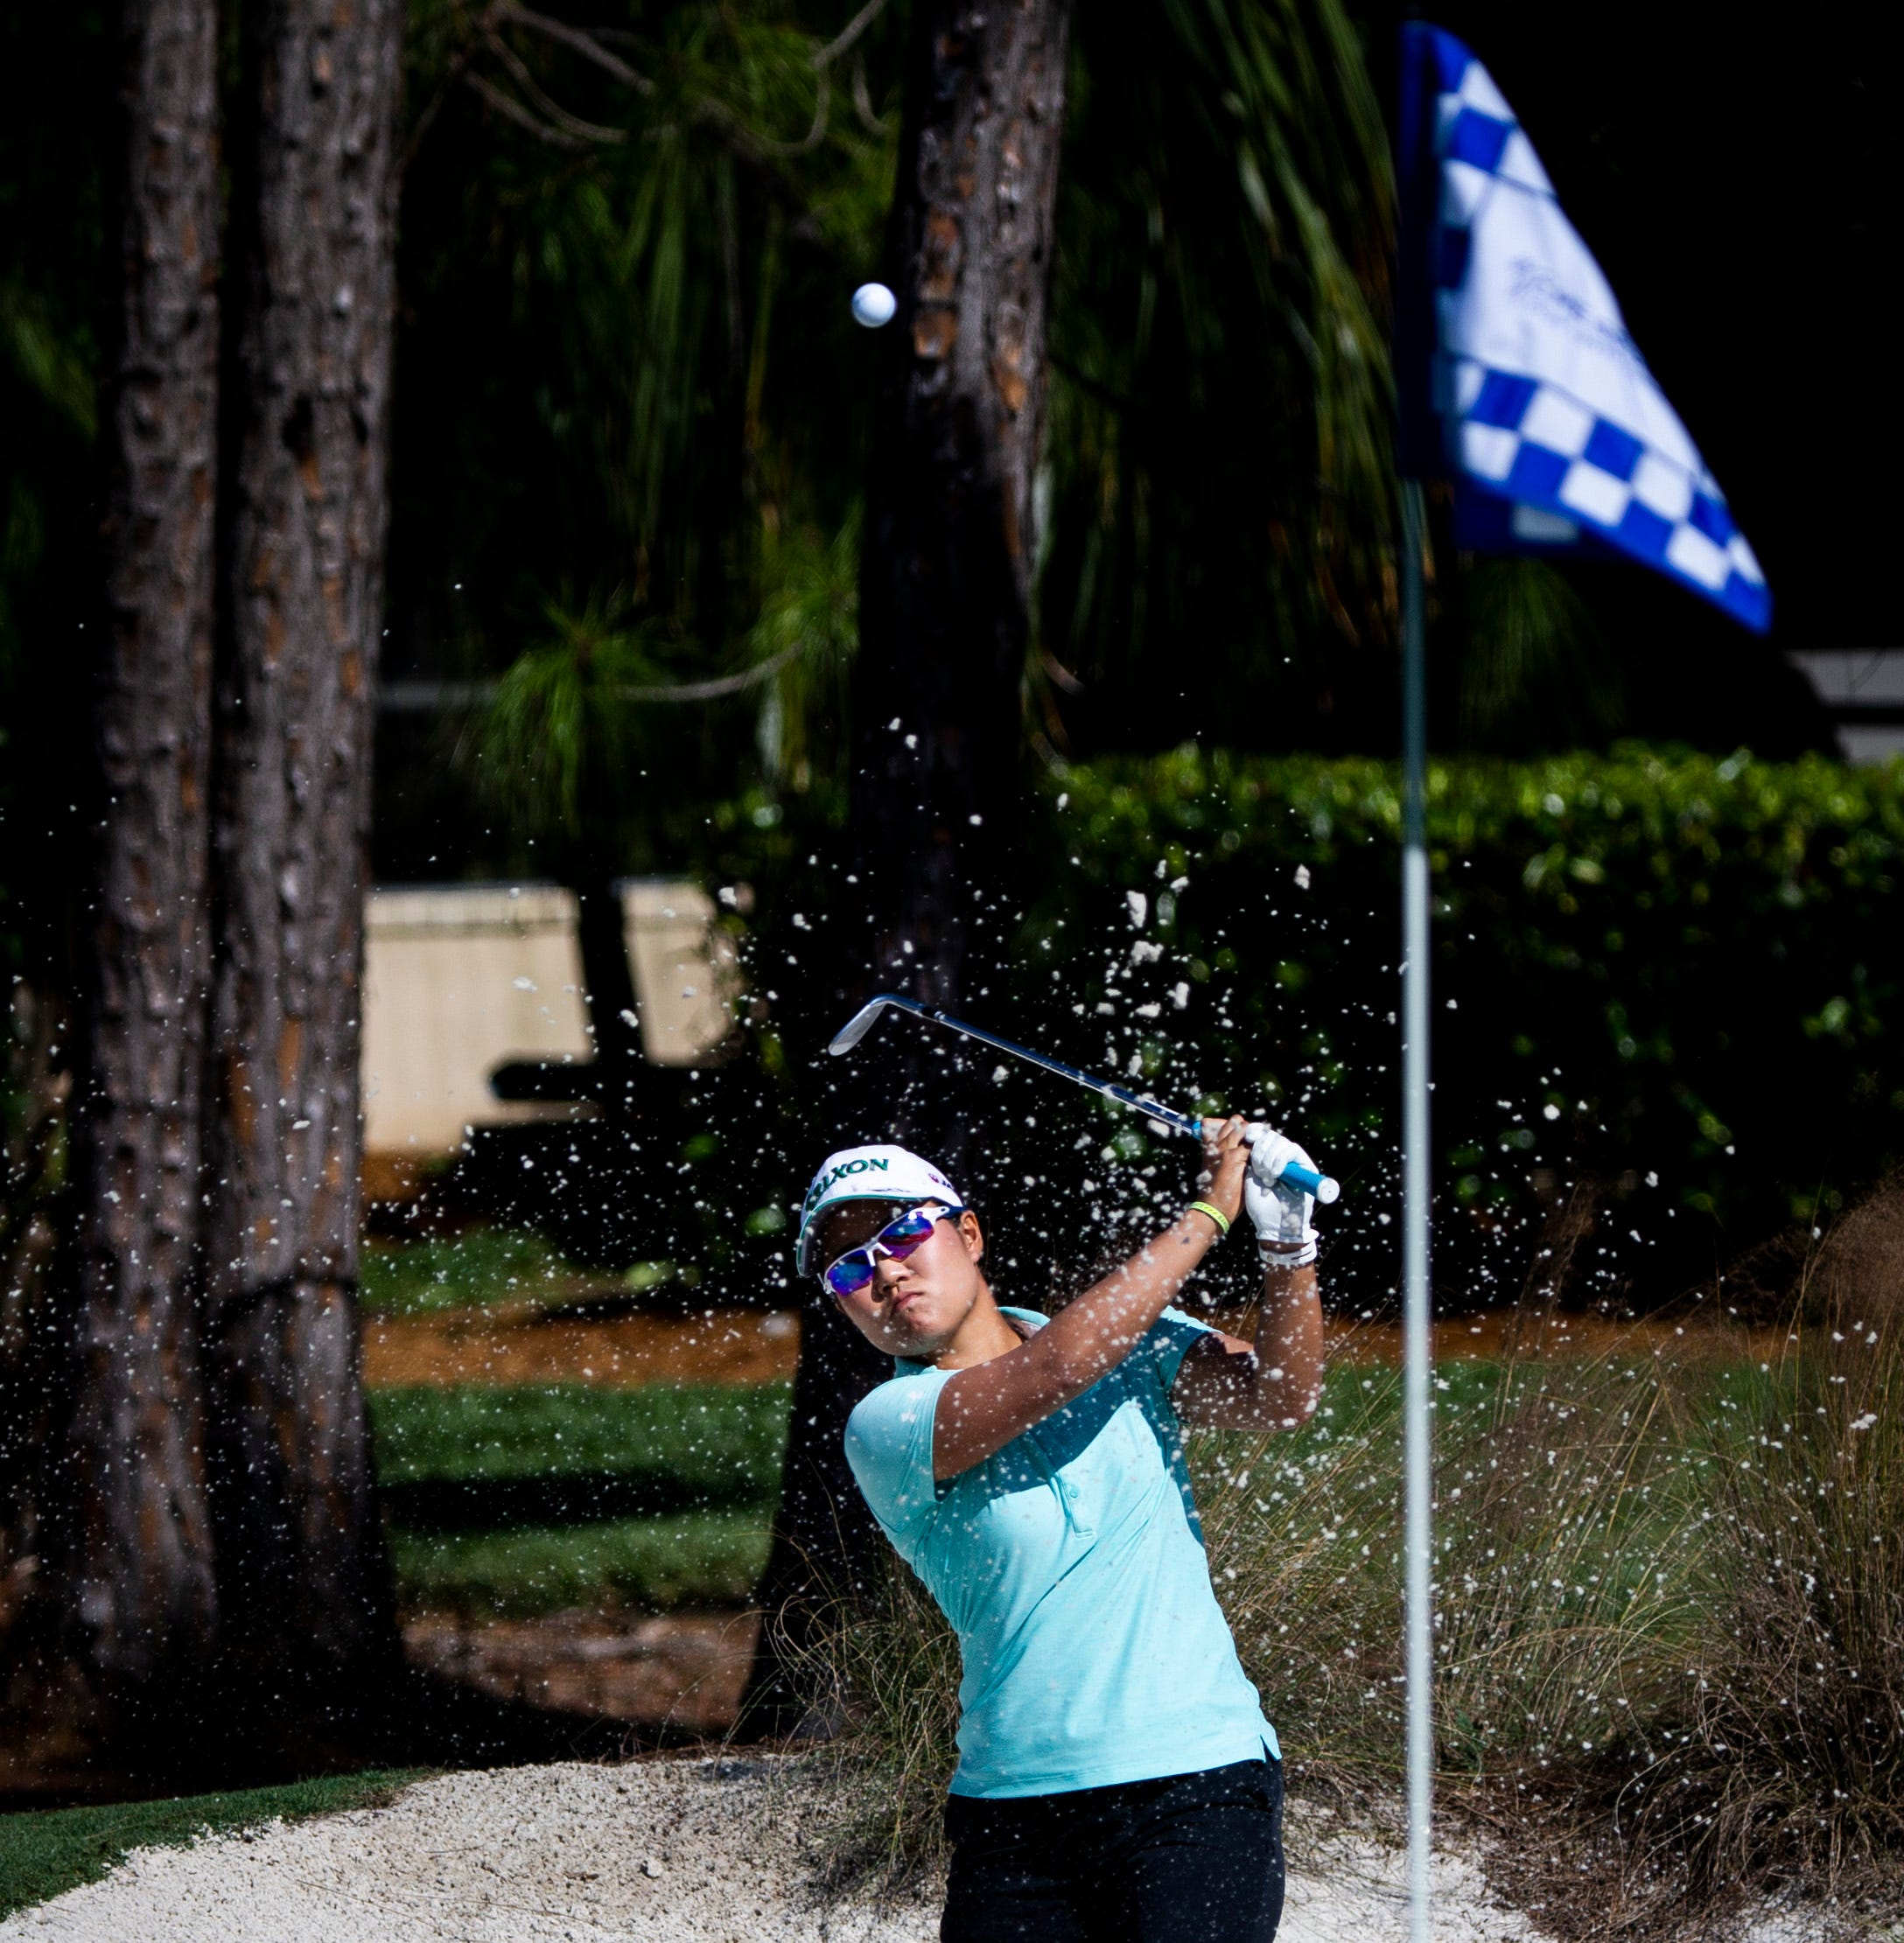 CME Group Tour Championship: Brittany Lincicome, Lexi Thompson go back in time to near top